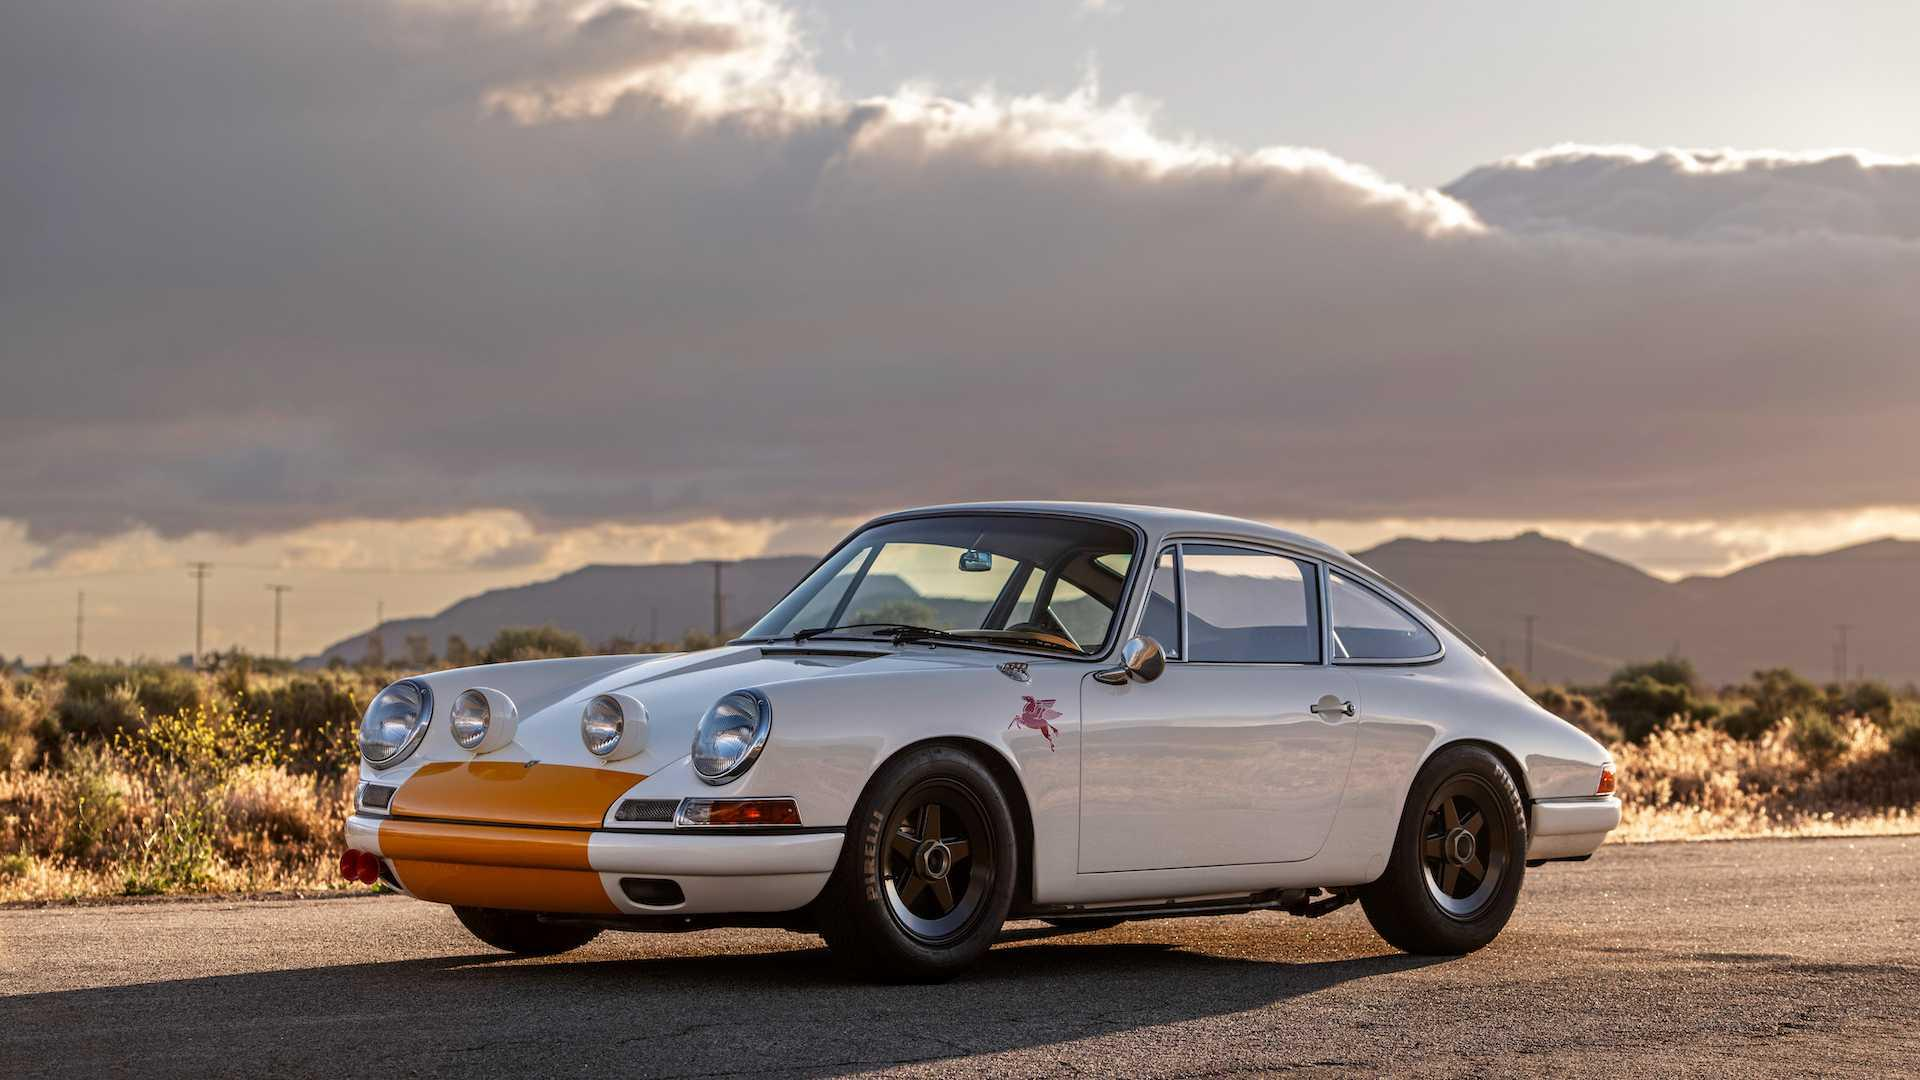 emory-motorsports-is-excited-to-unveil-its-first-ever-fully-custom-911-the-emory-outlaw-911k 7.jpg